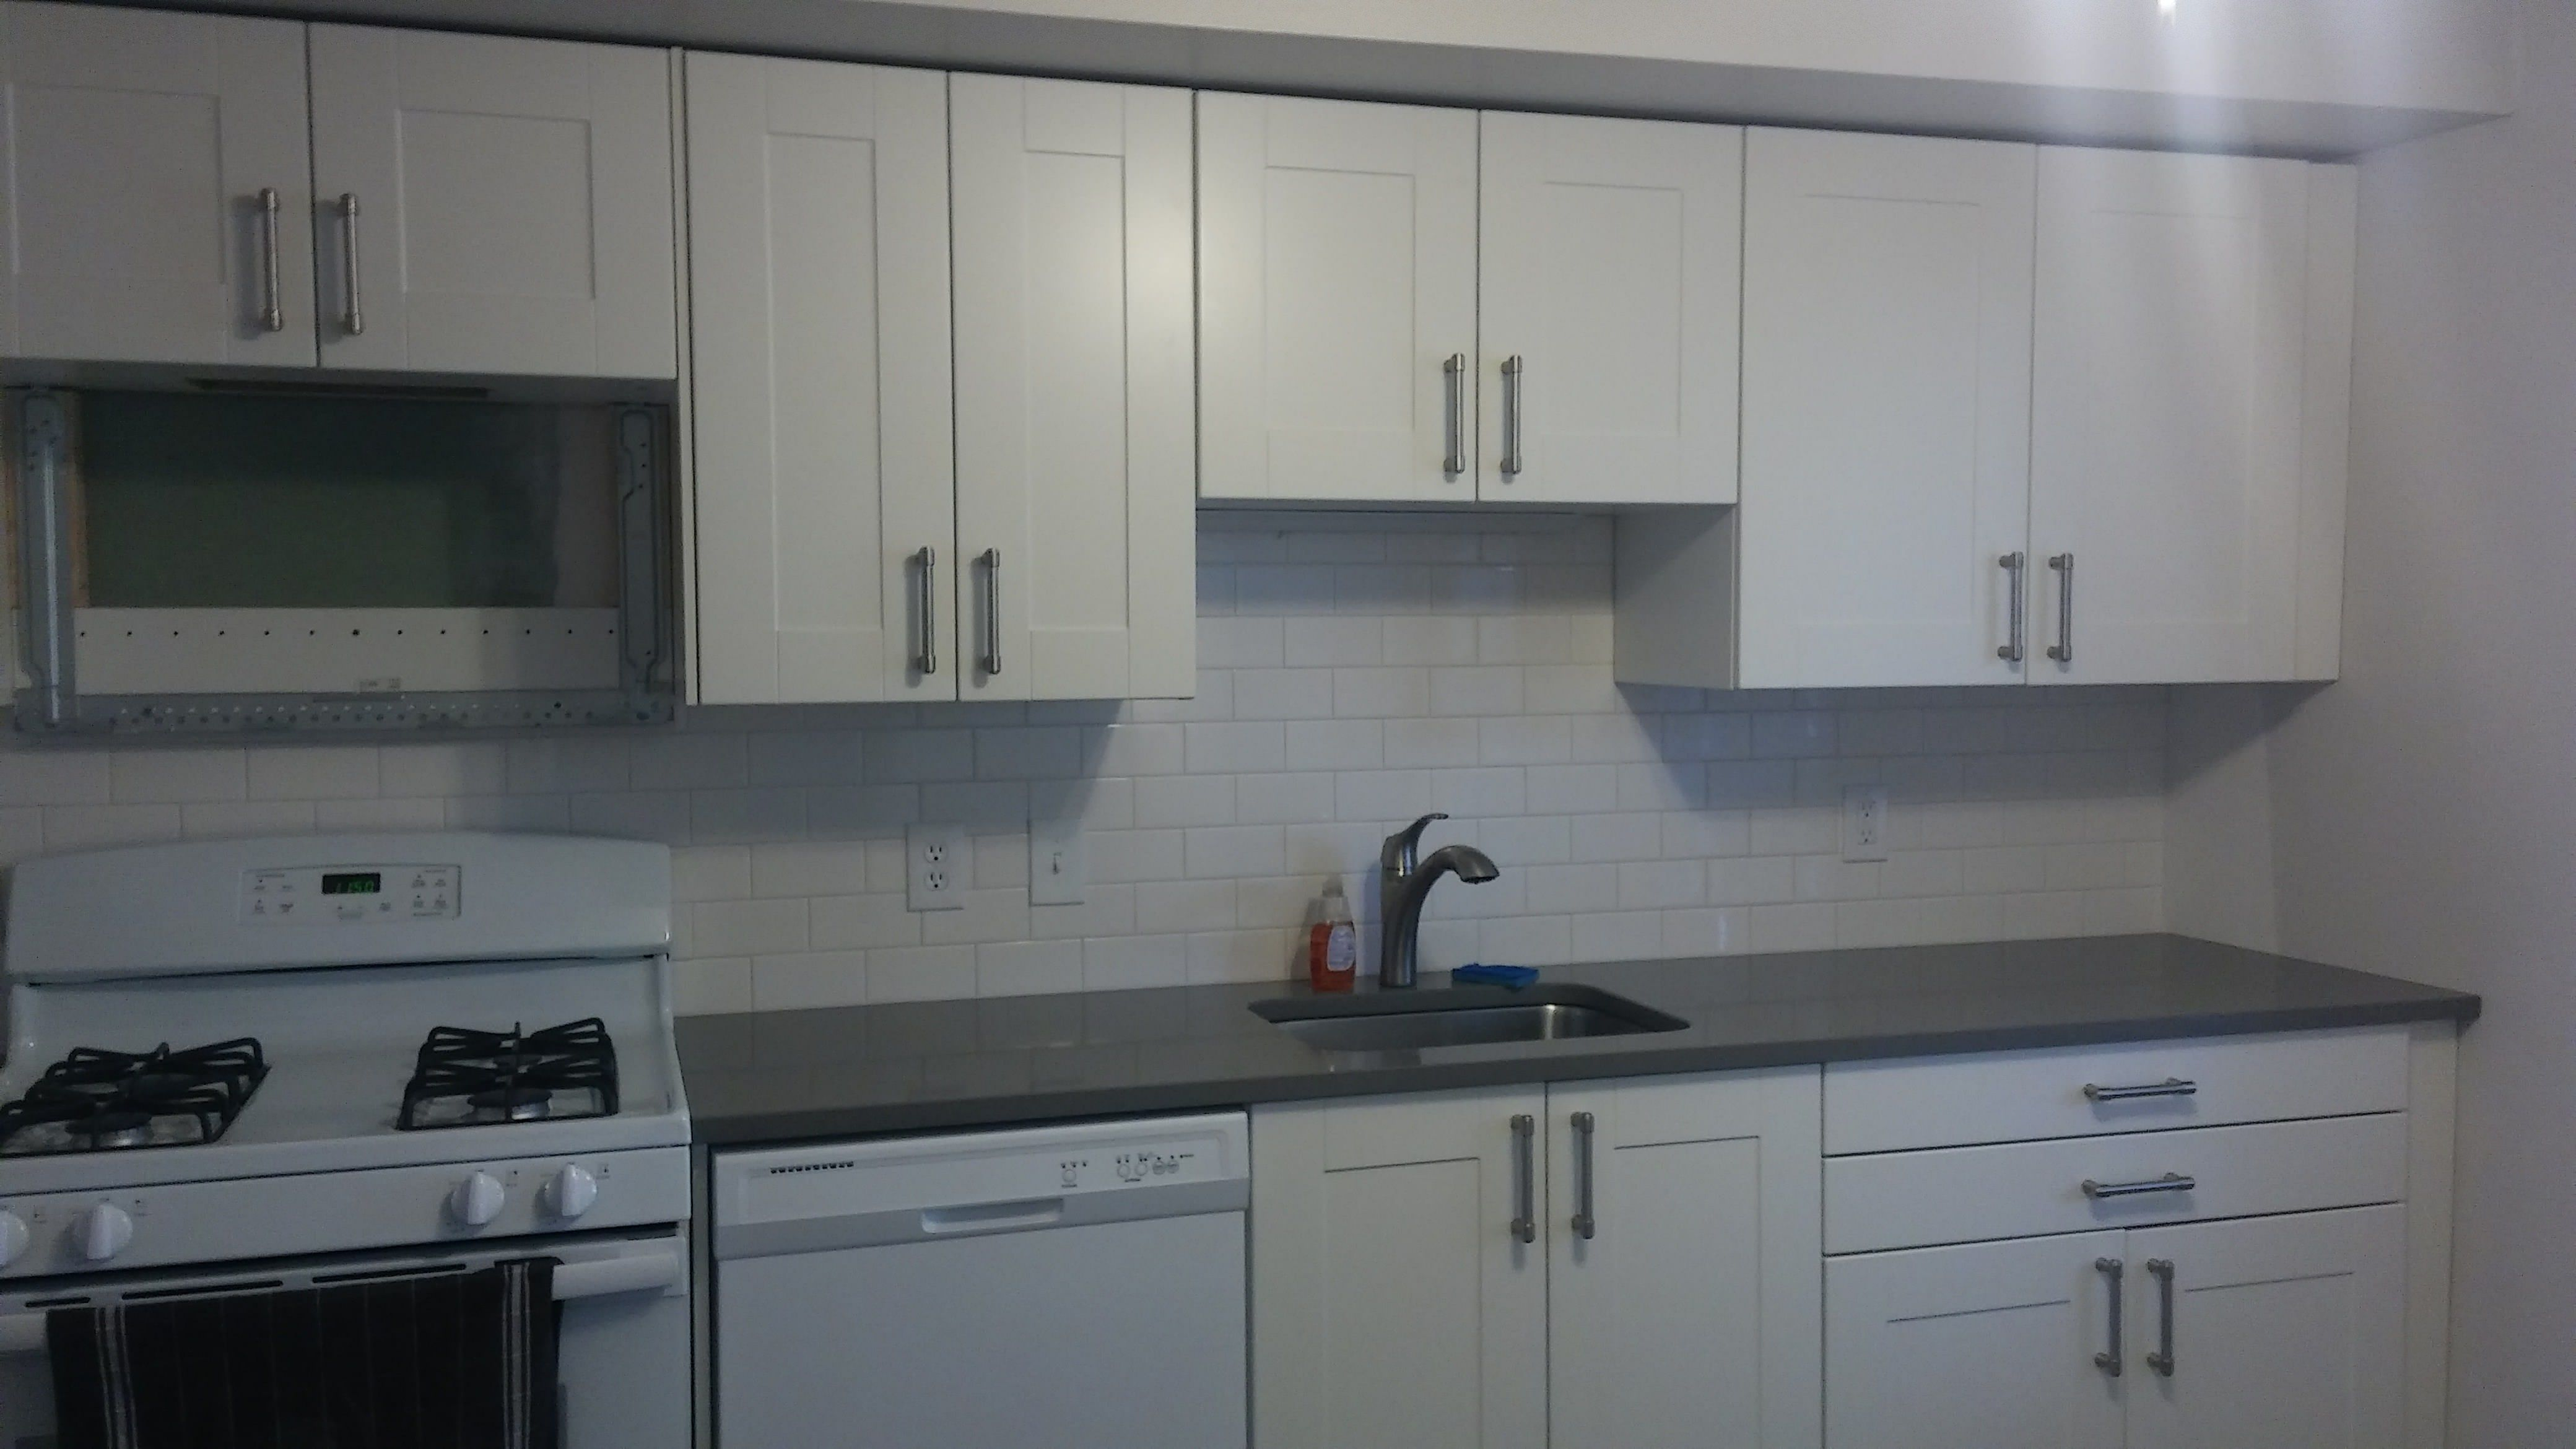 Common Kitchen Design Mistakes Do I Need Fillers For Drawer Cabinets By The Wall Ikea Kitchen Kitchen Installation Kitchen Cabinet Design